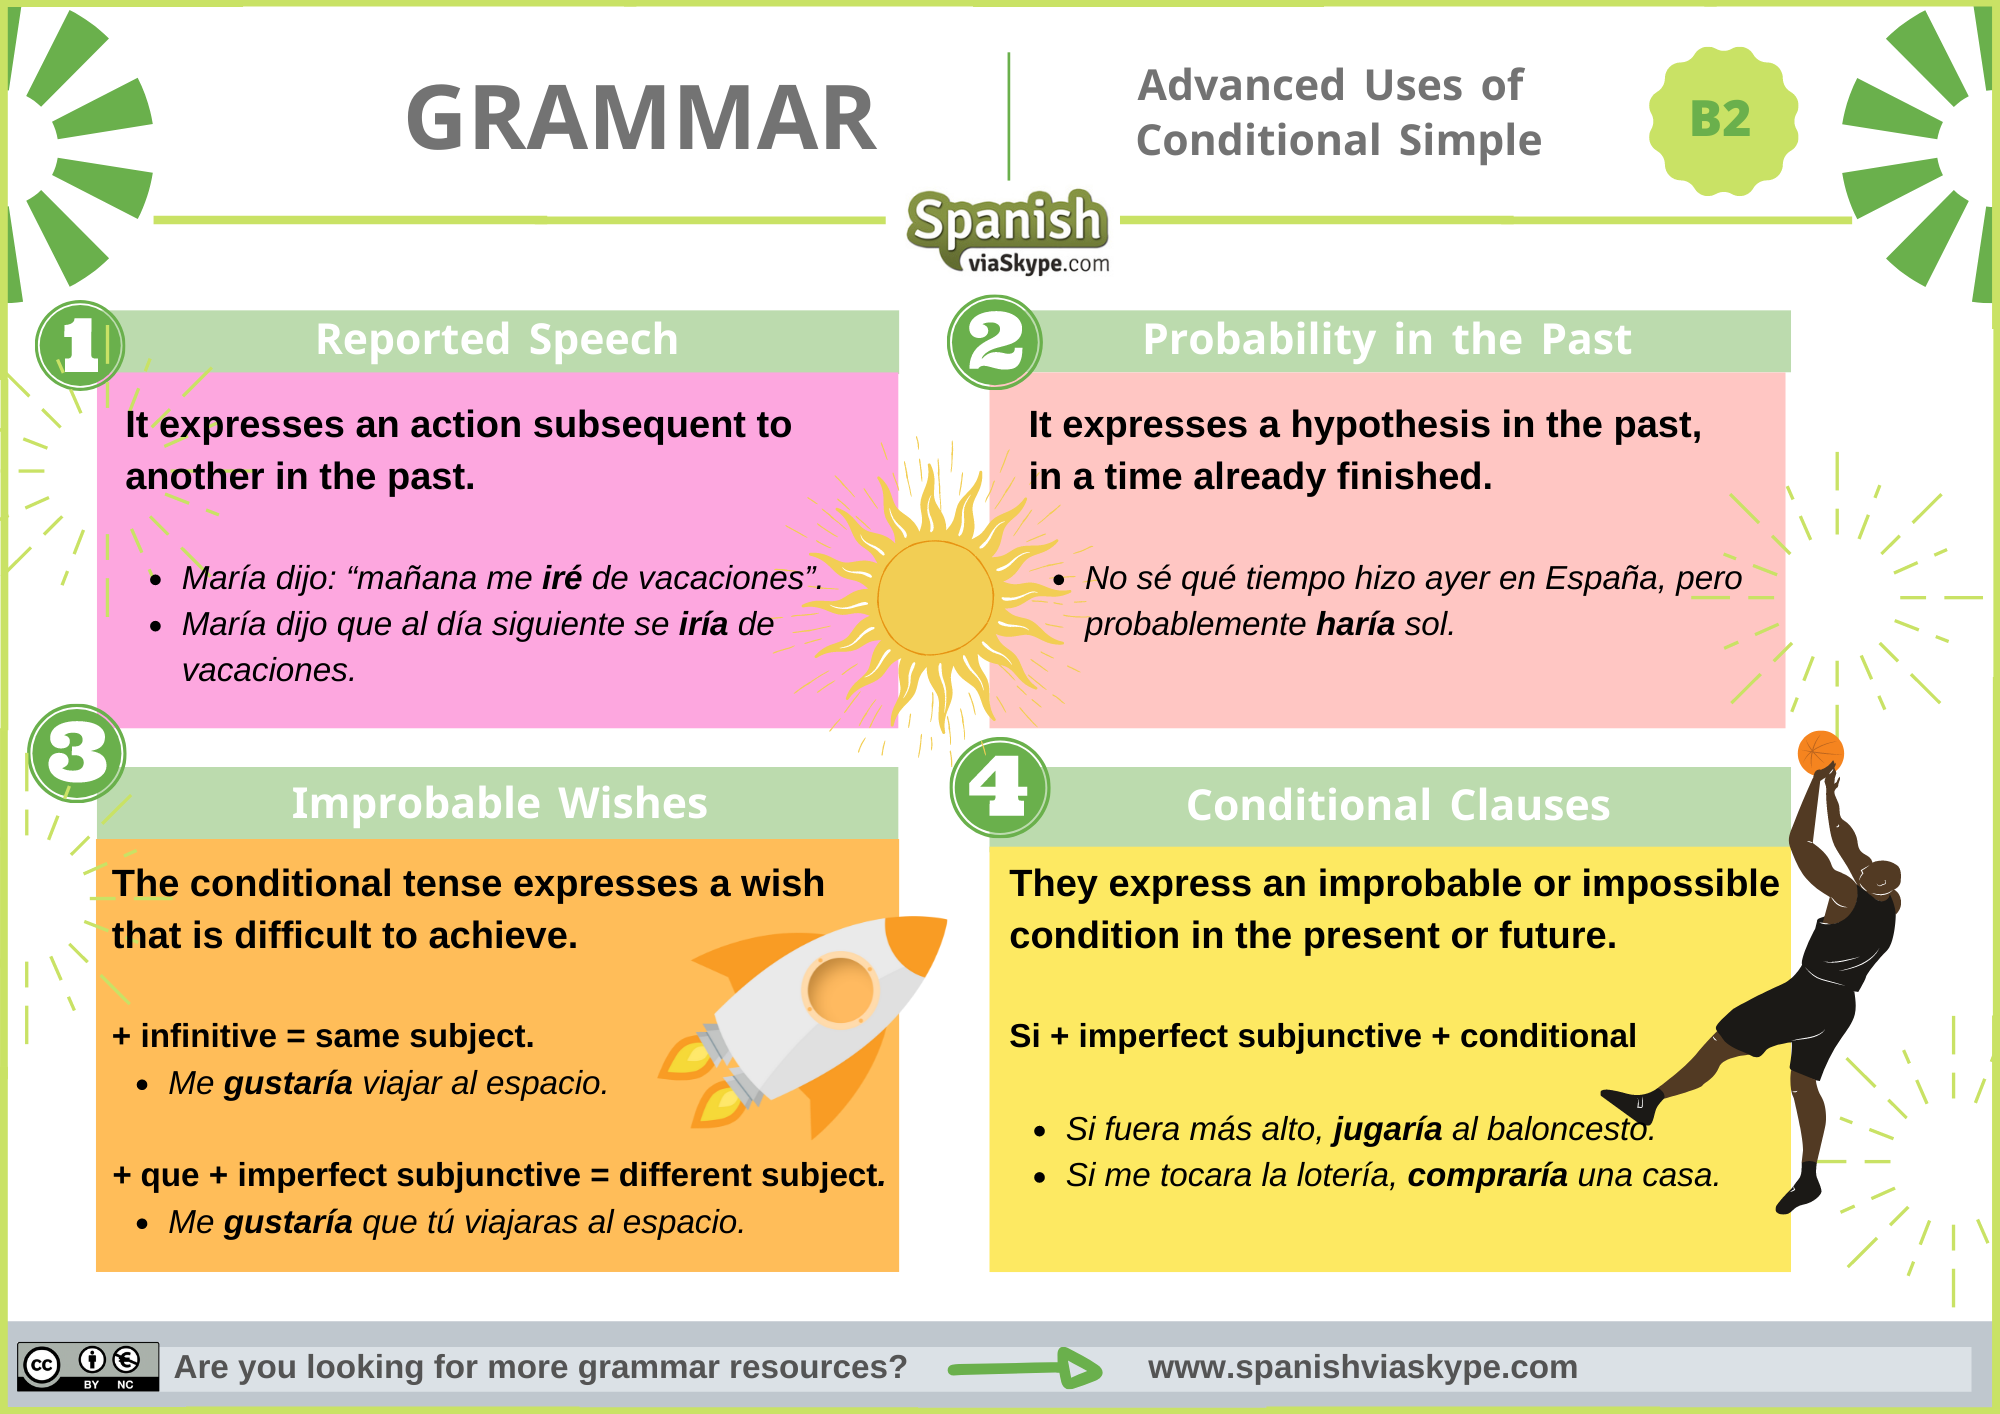 Infographic on the advanced uses of the simple conditional in Spanish